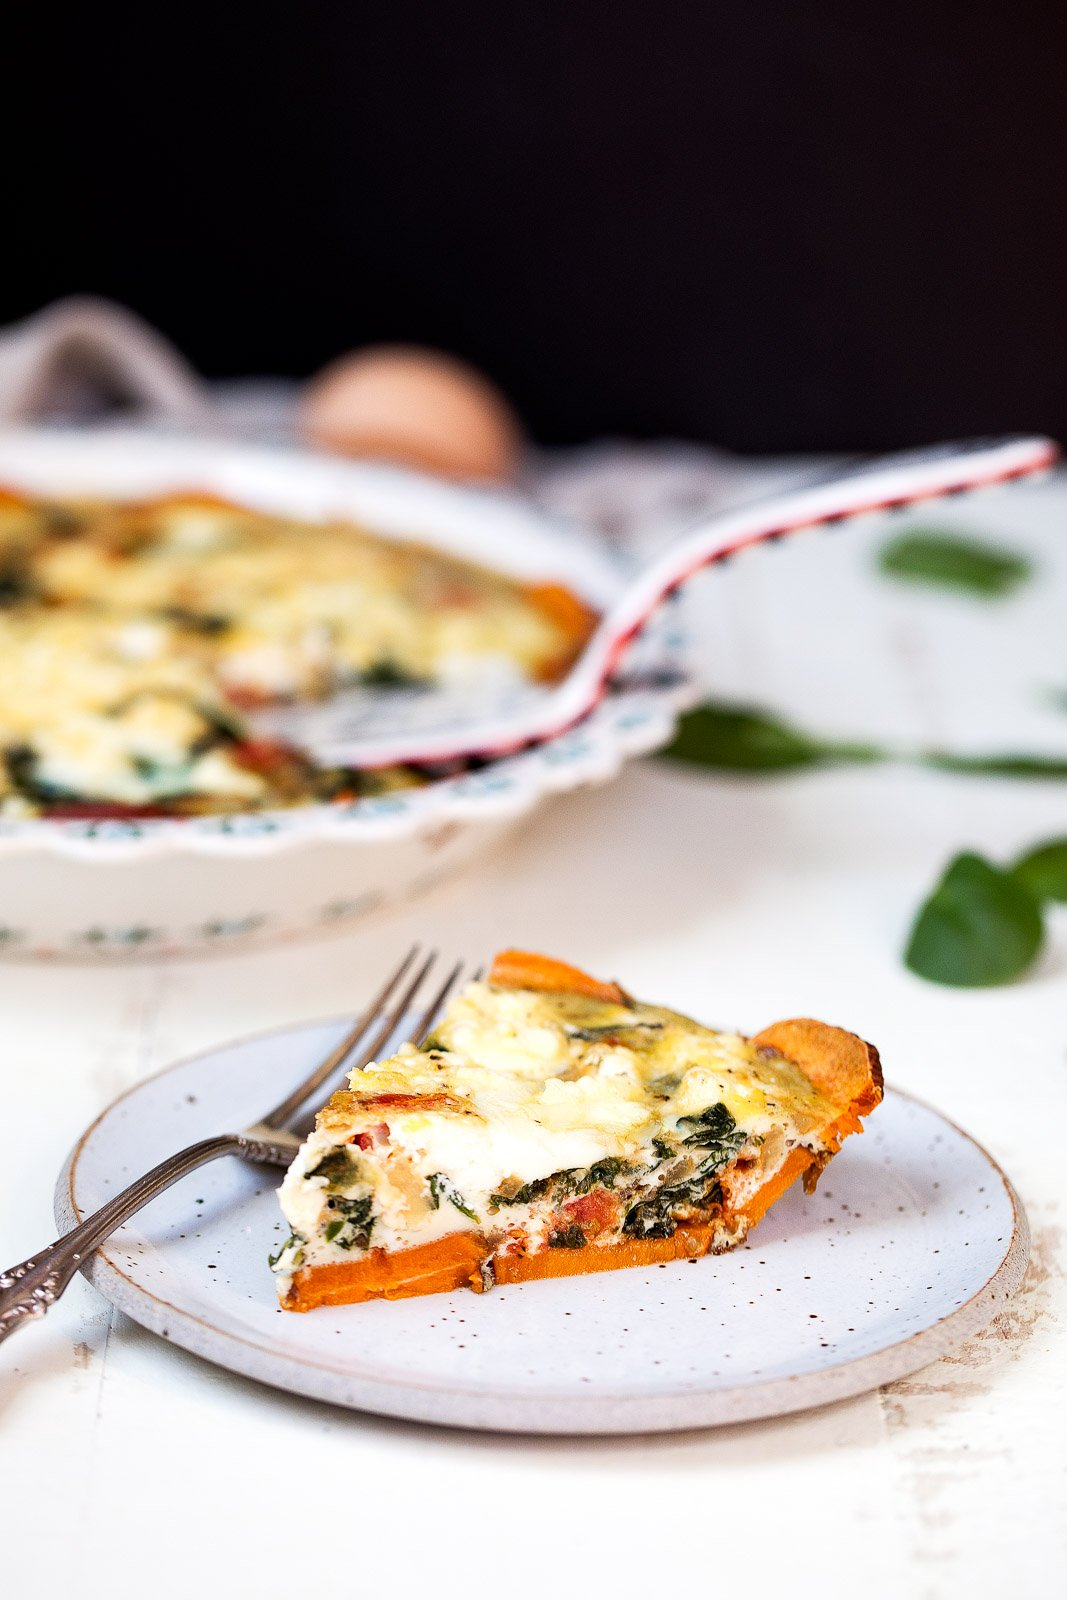 Spinach and goat cheese quiche with sweet potato crust on a plate